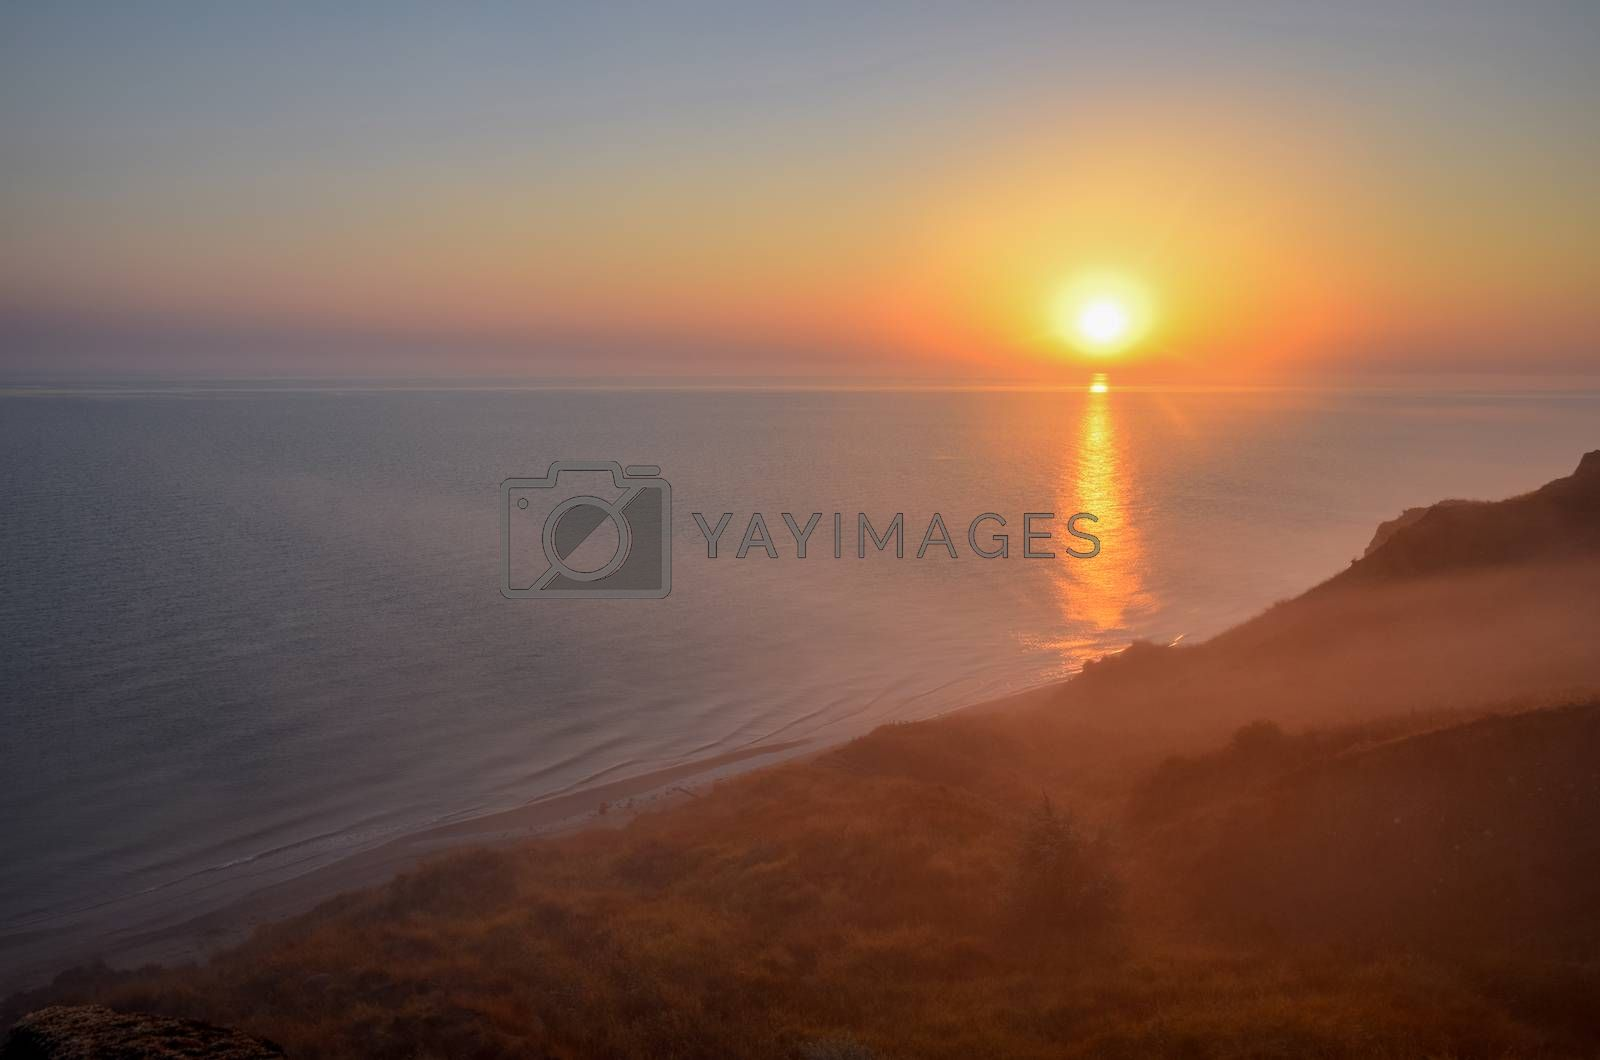 Dawn over the sea. Sea of Azov. Morning mist over the shore. Sunrise